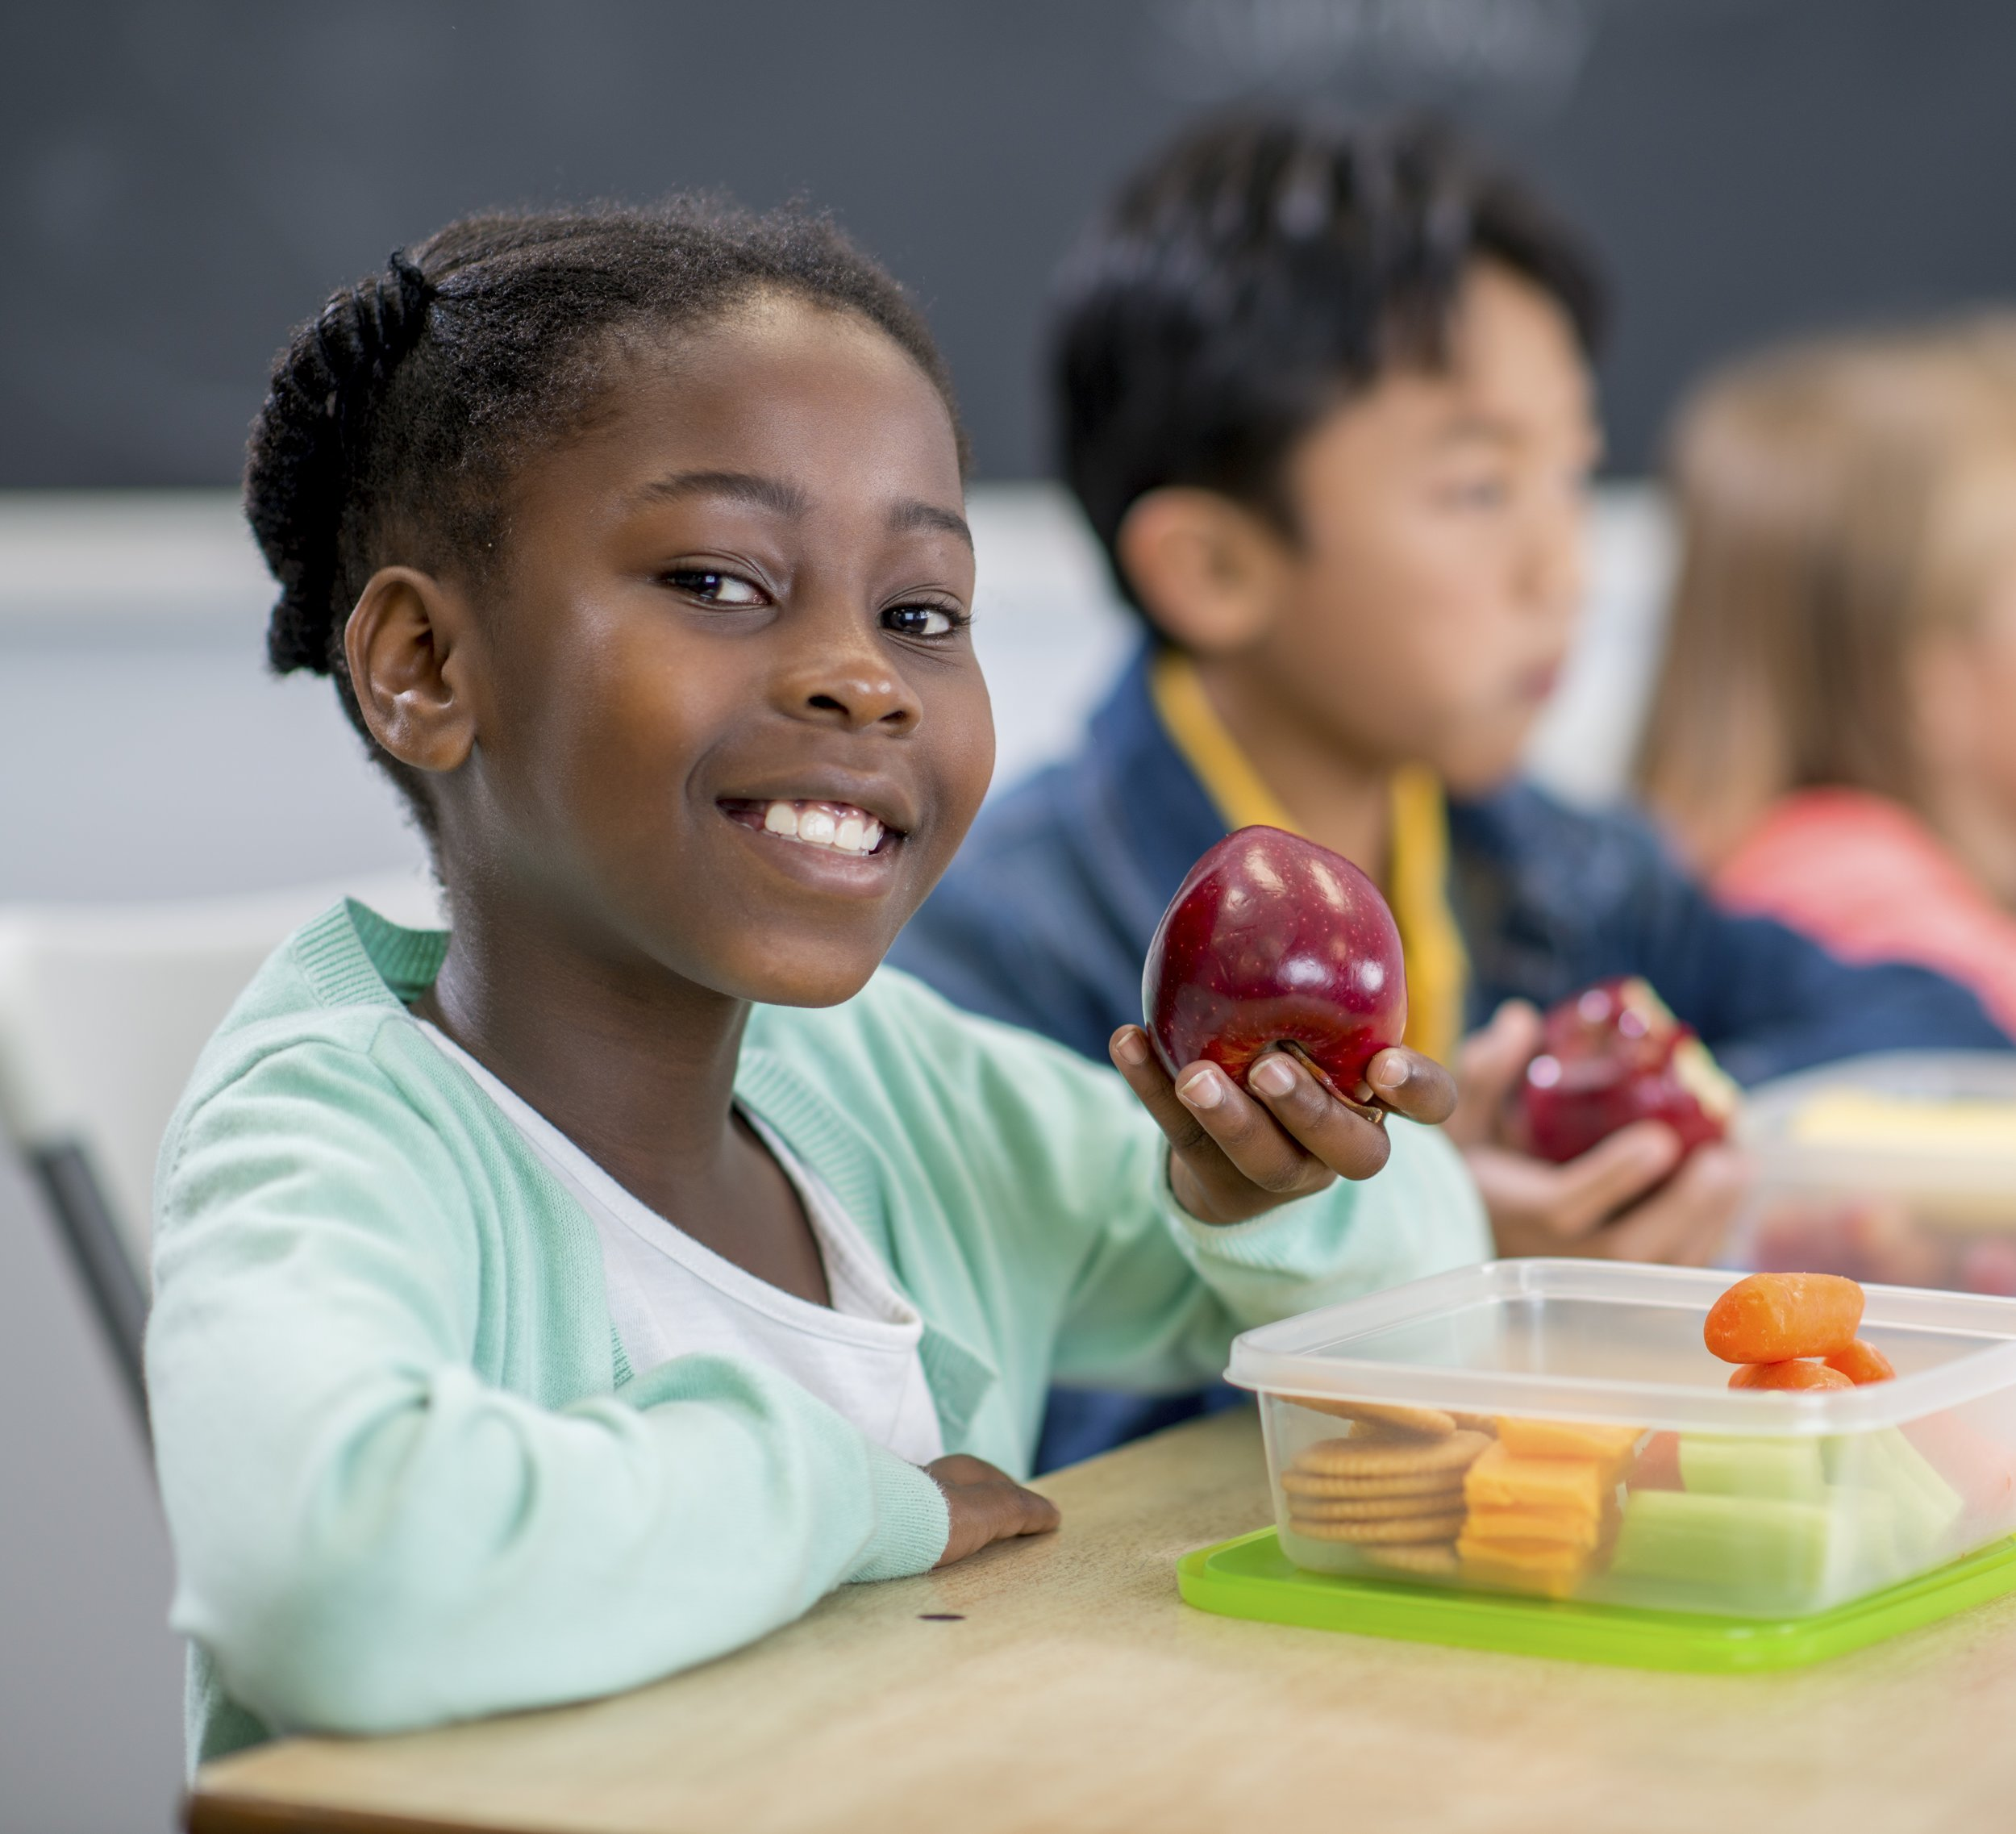 School nutrition program provides healthy snacks for students